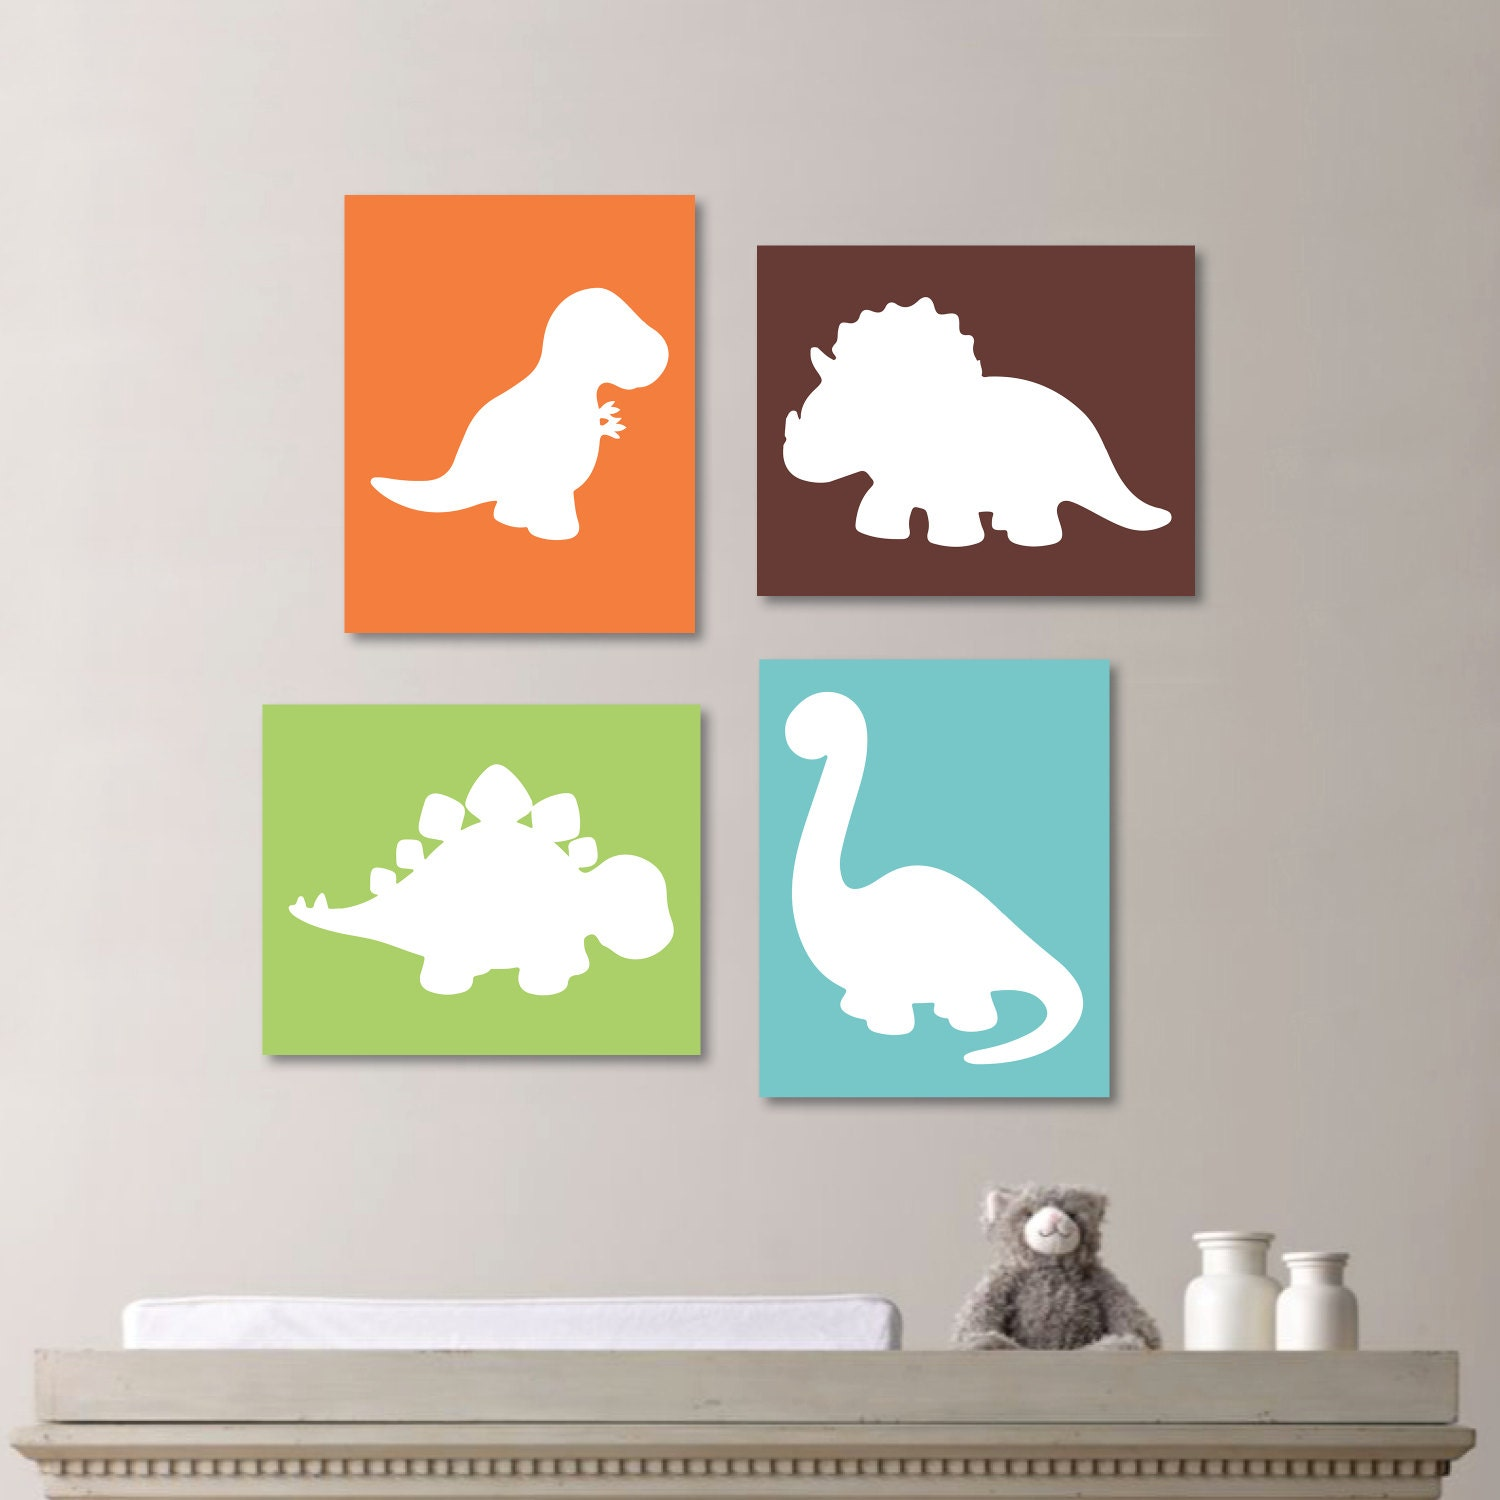 Baby Room Decor Nursery Decor Nursery Boy Kids Art By: Baby Boy Nursery Art Boy Nursery Decor Dinosaur Nursery